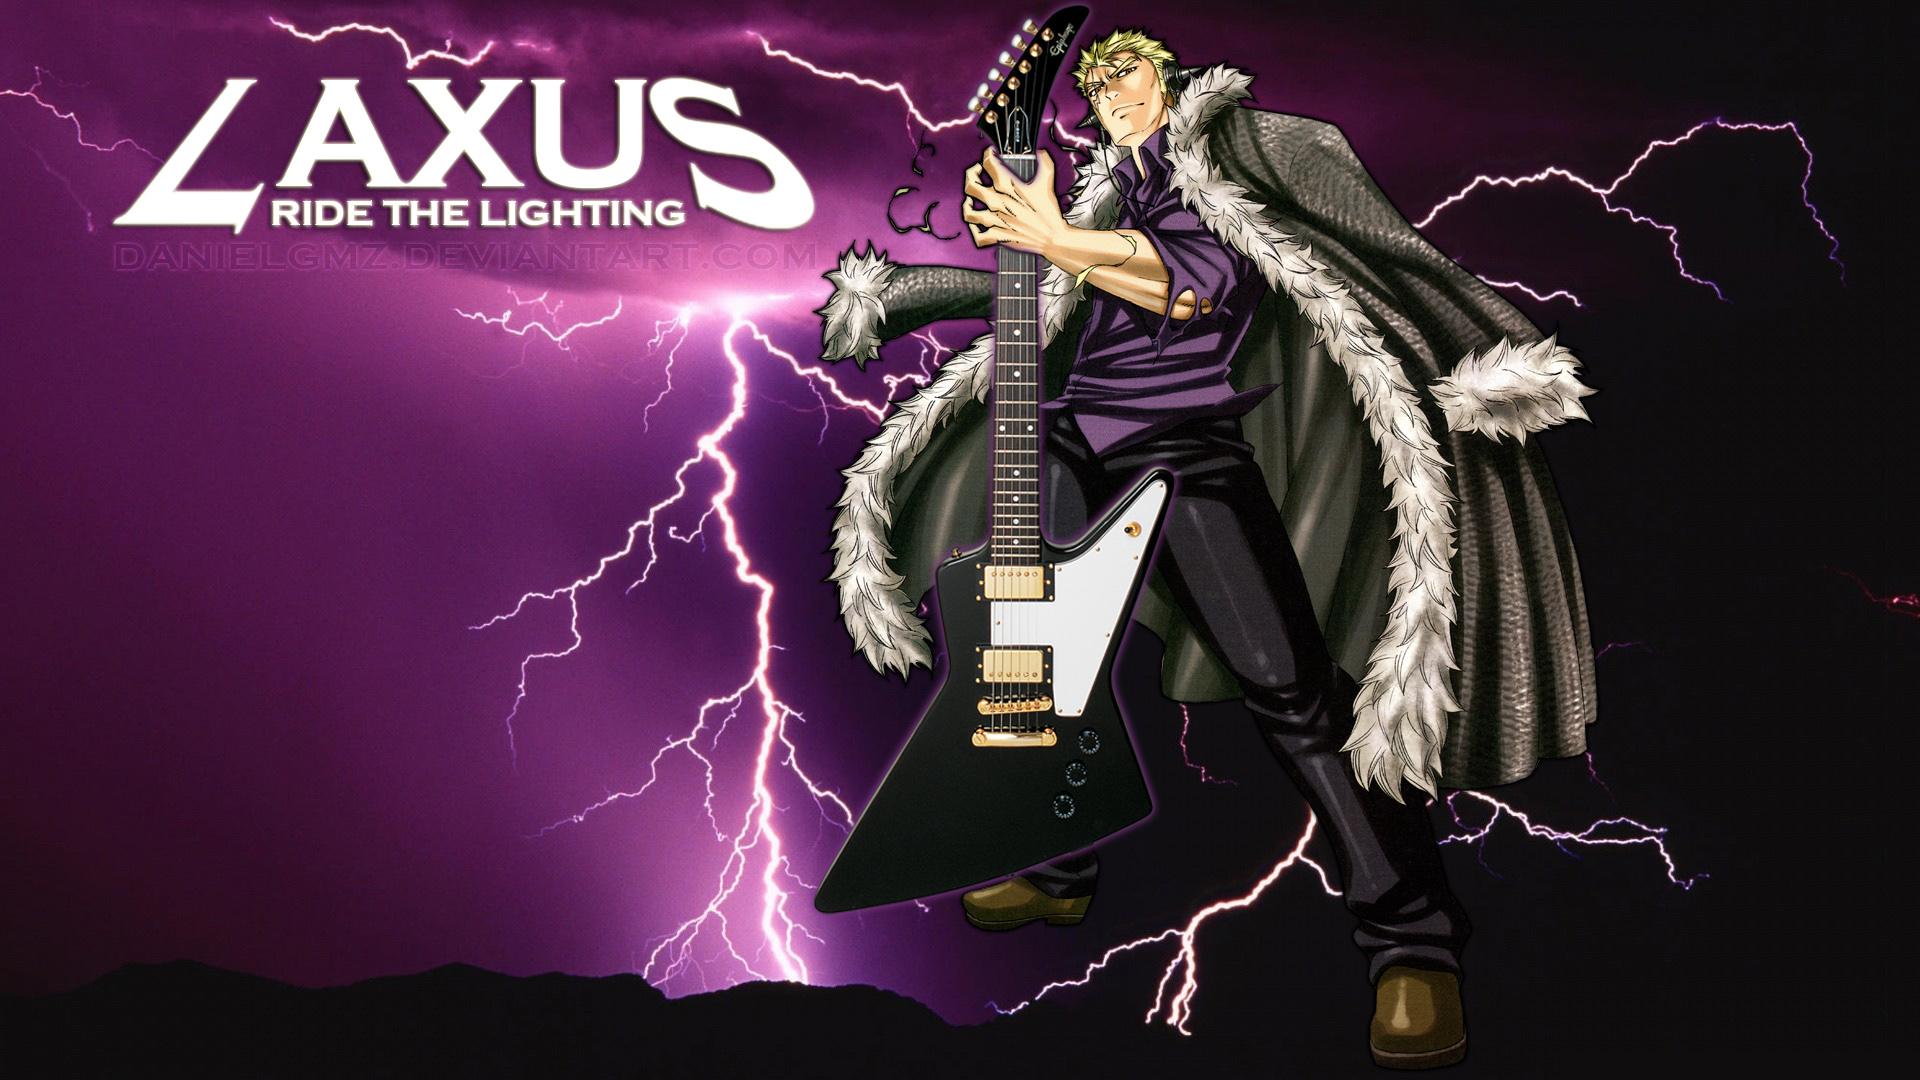 Laxus: Ride the Lighting by Danielgmz on DeviantArt